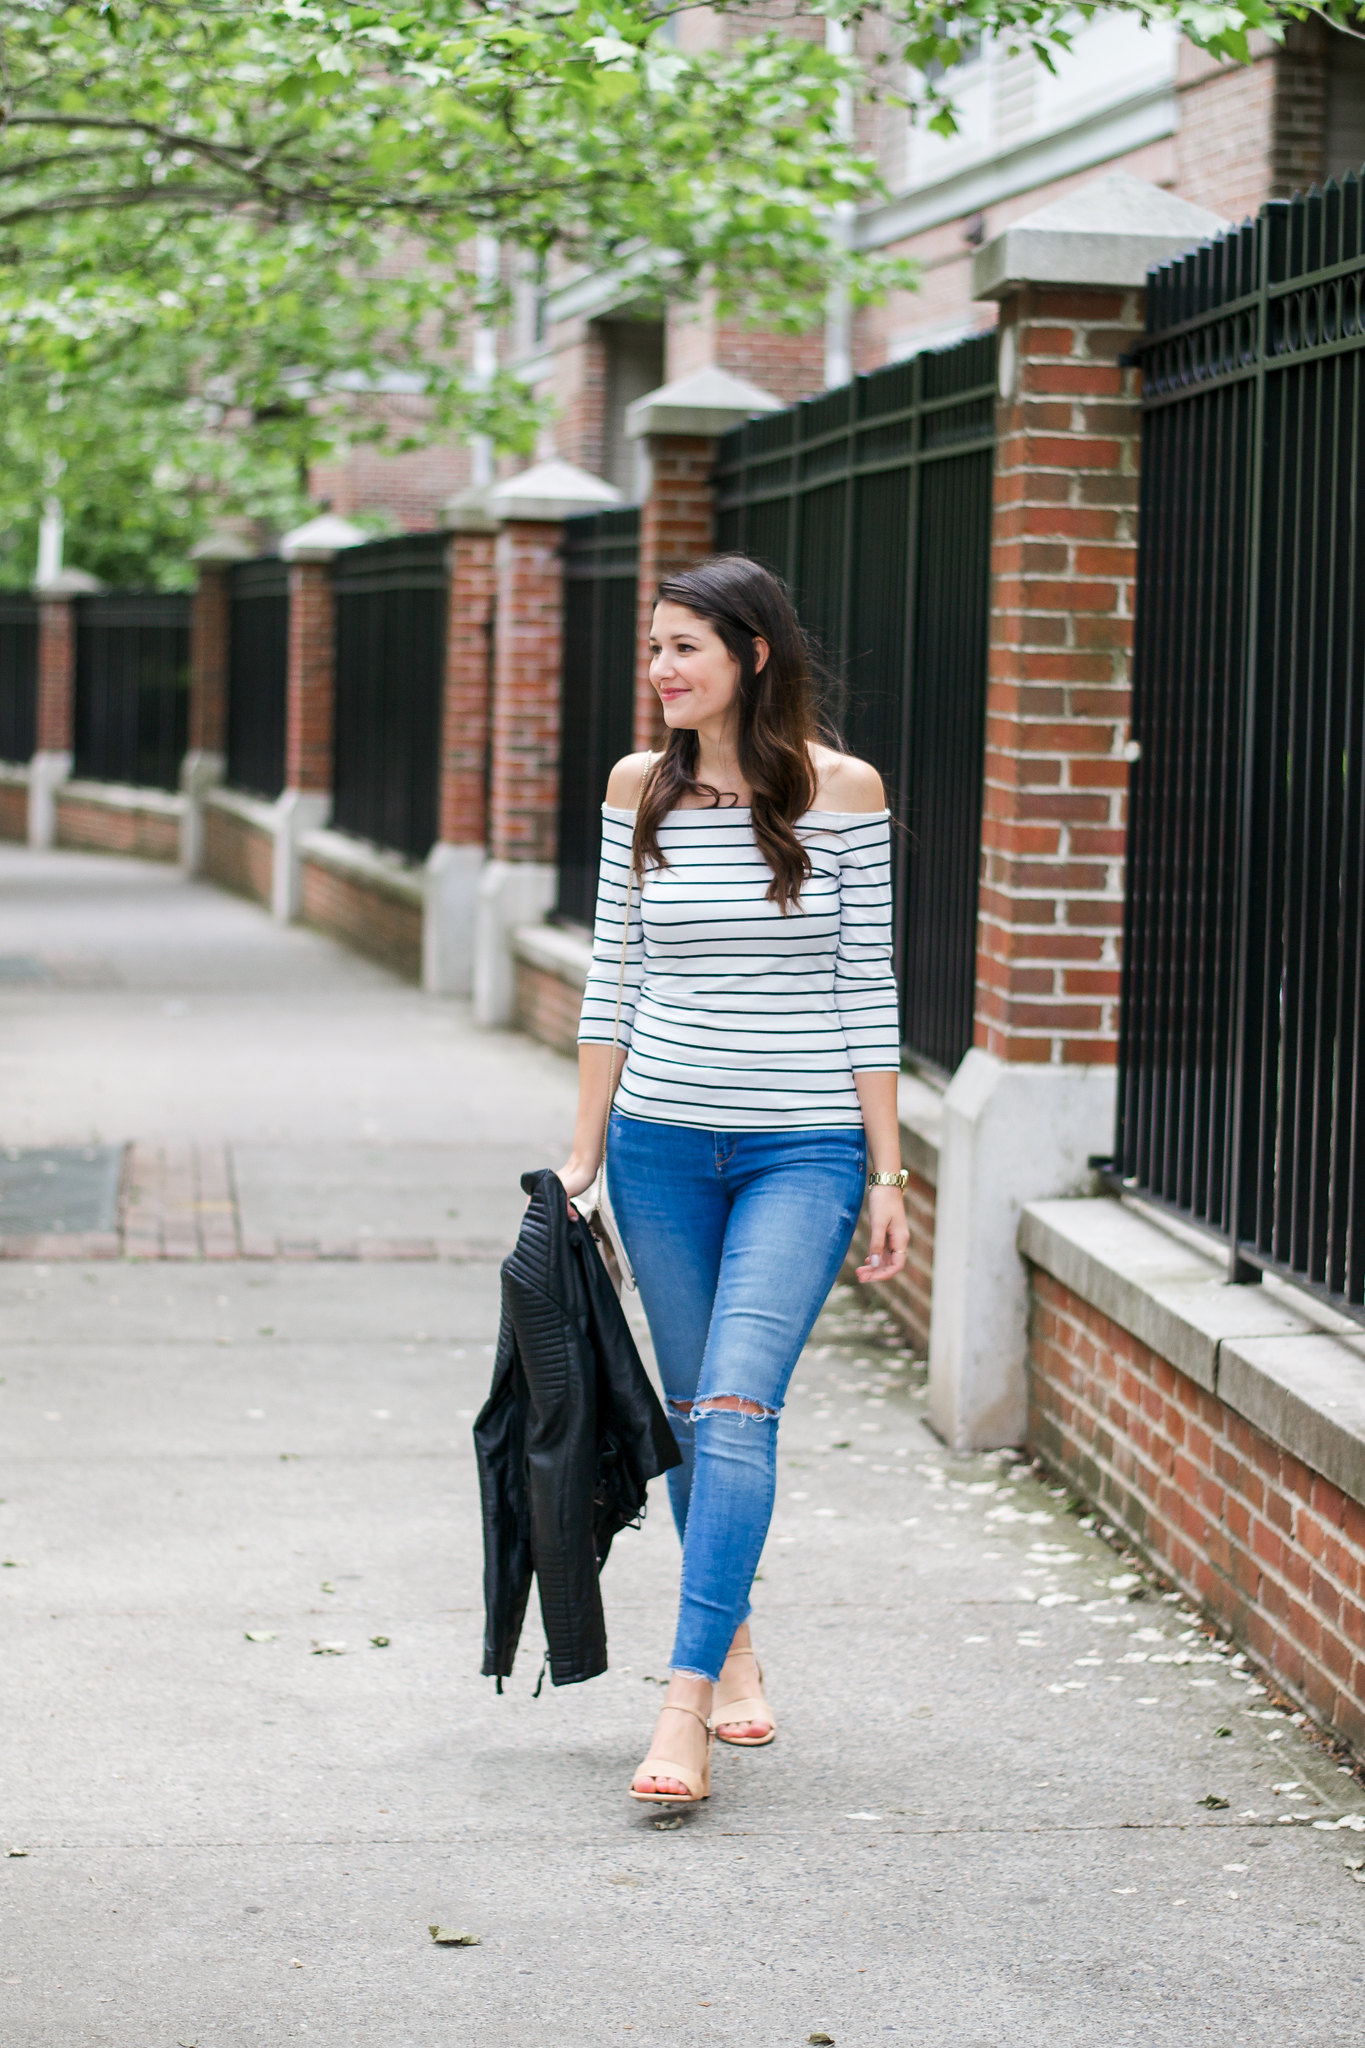 H&M Off The Shoulder Top Outfit